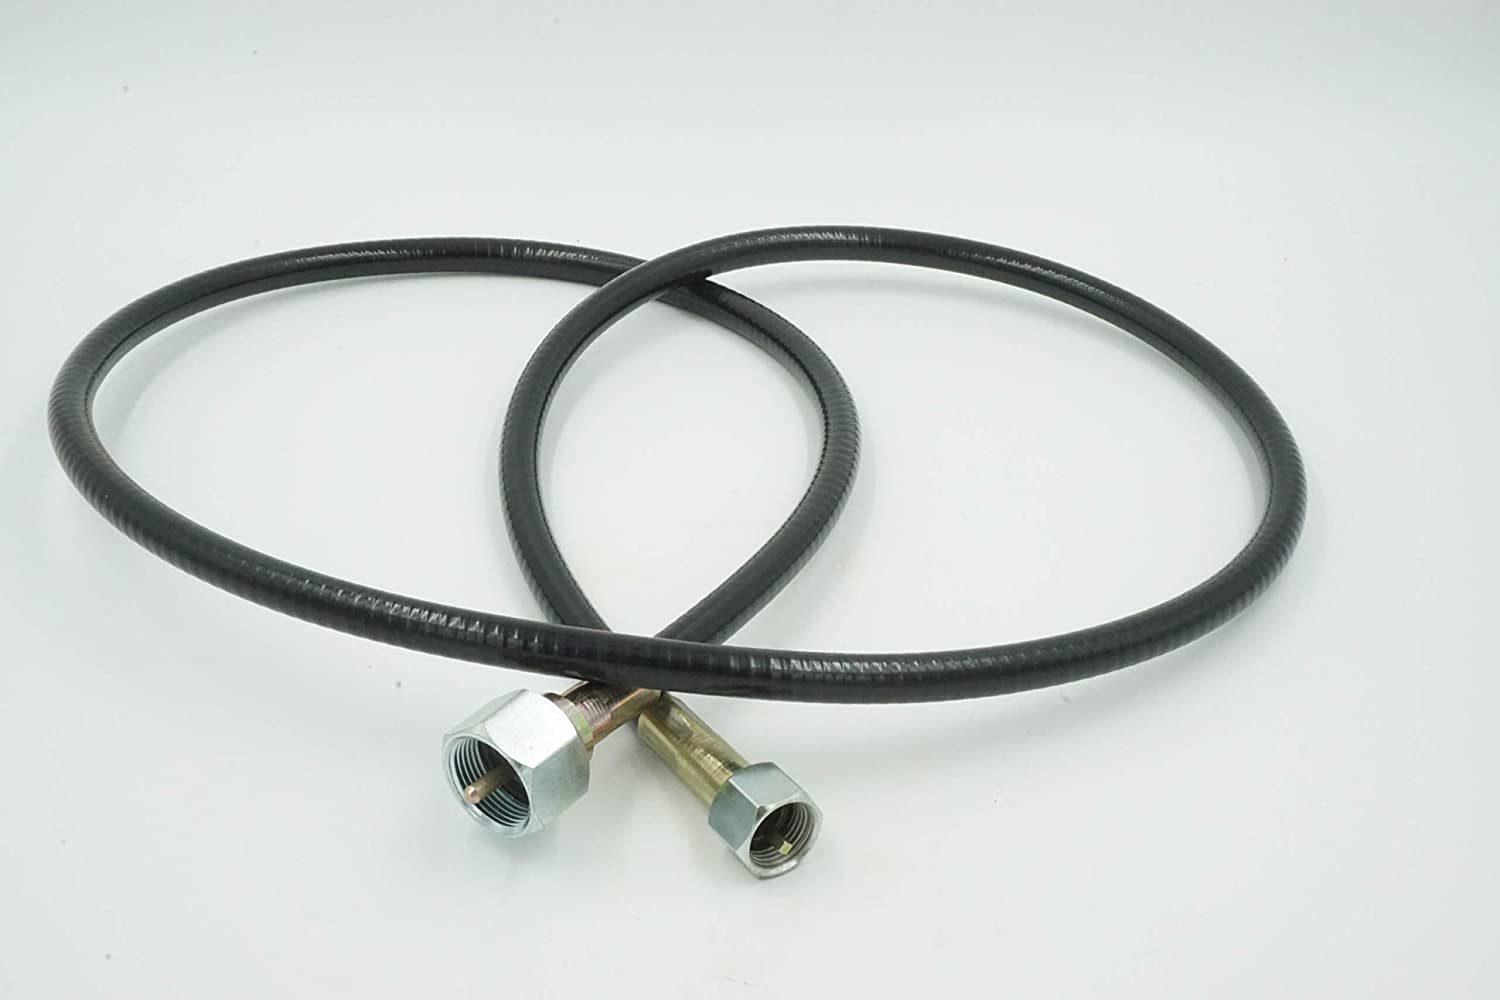 Omnia Warehouse WO-805129 Willys Jeep M38 M38A1 Speedometer Cable Speedometer Cable and housing 59 805129 Willys Jeep M38 M38A1